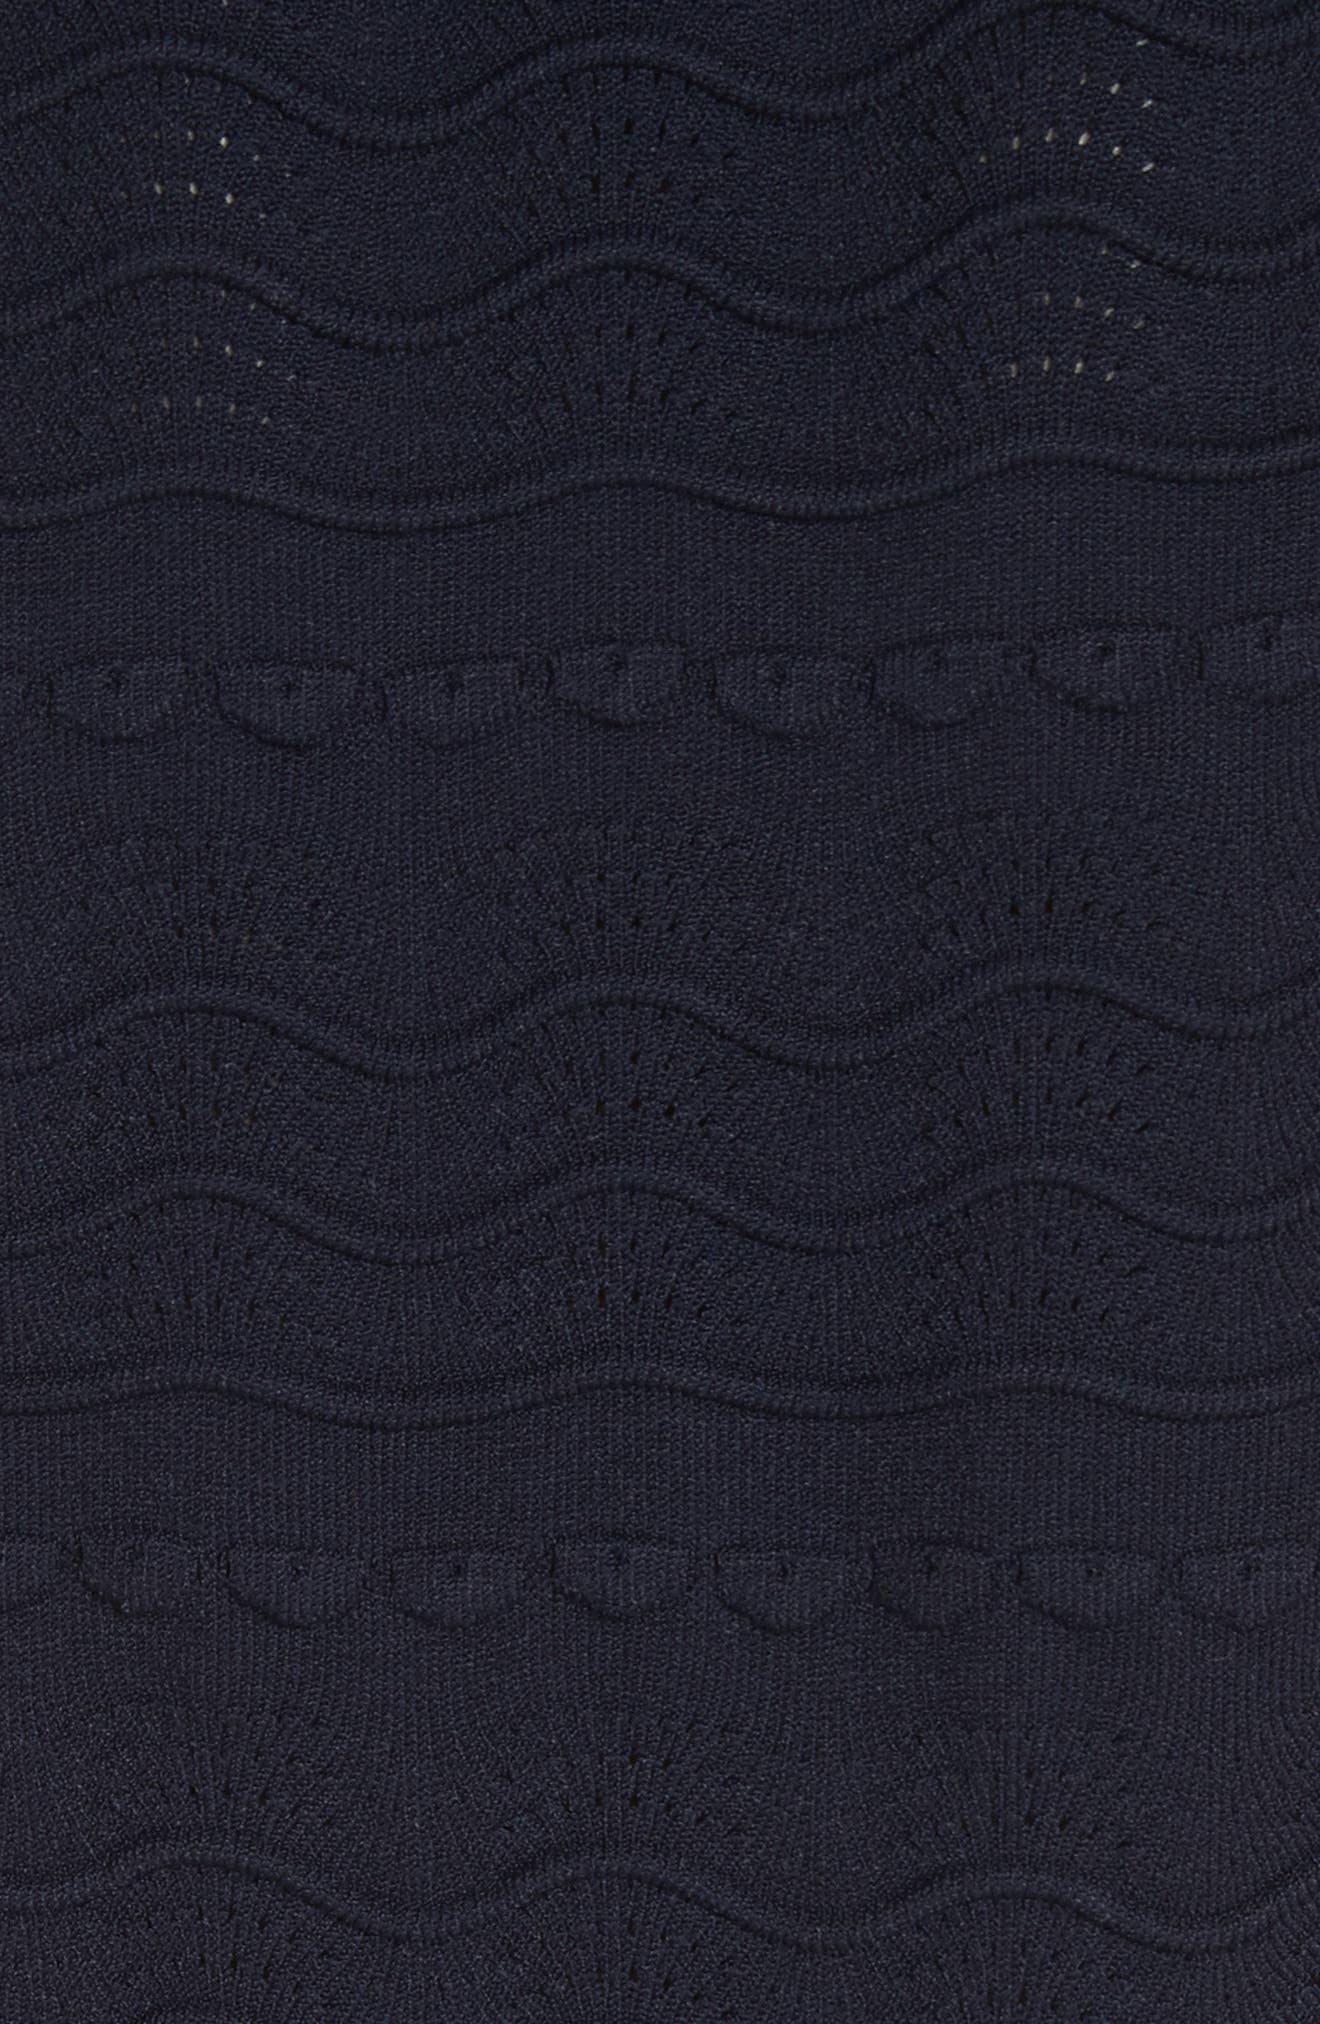 kate spade textured sweater dress,                             Alternate thumbnail 5, color,                             Rich Navy